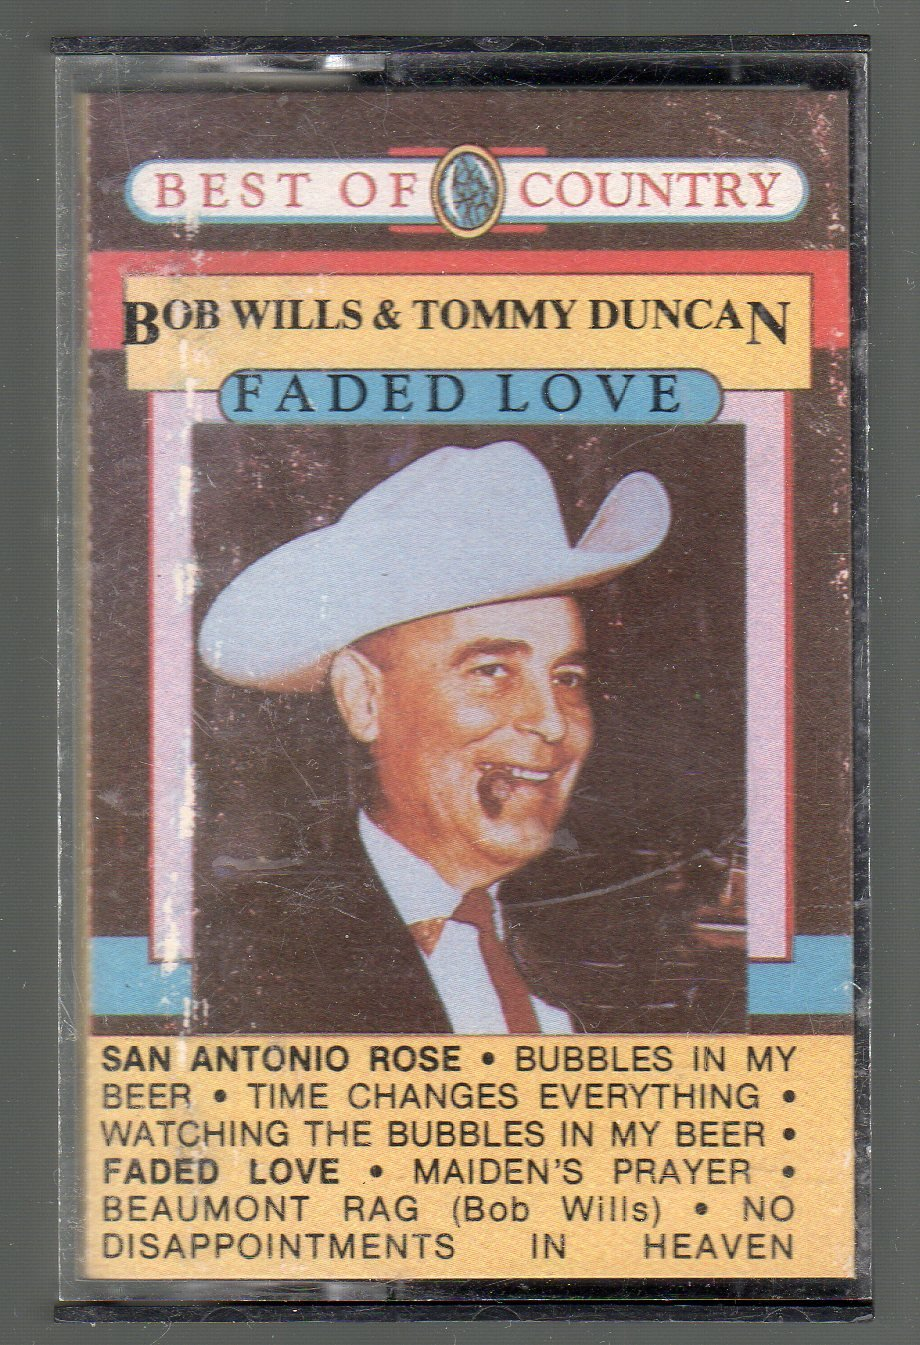 Bob Wills & Tommy Duncan - Faded Love STARDAY Cassette Tape